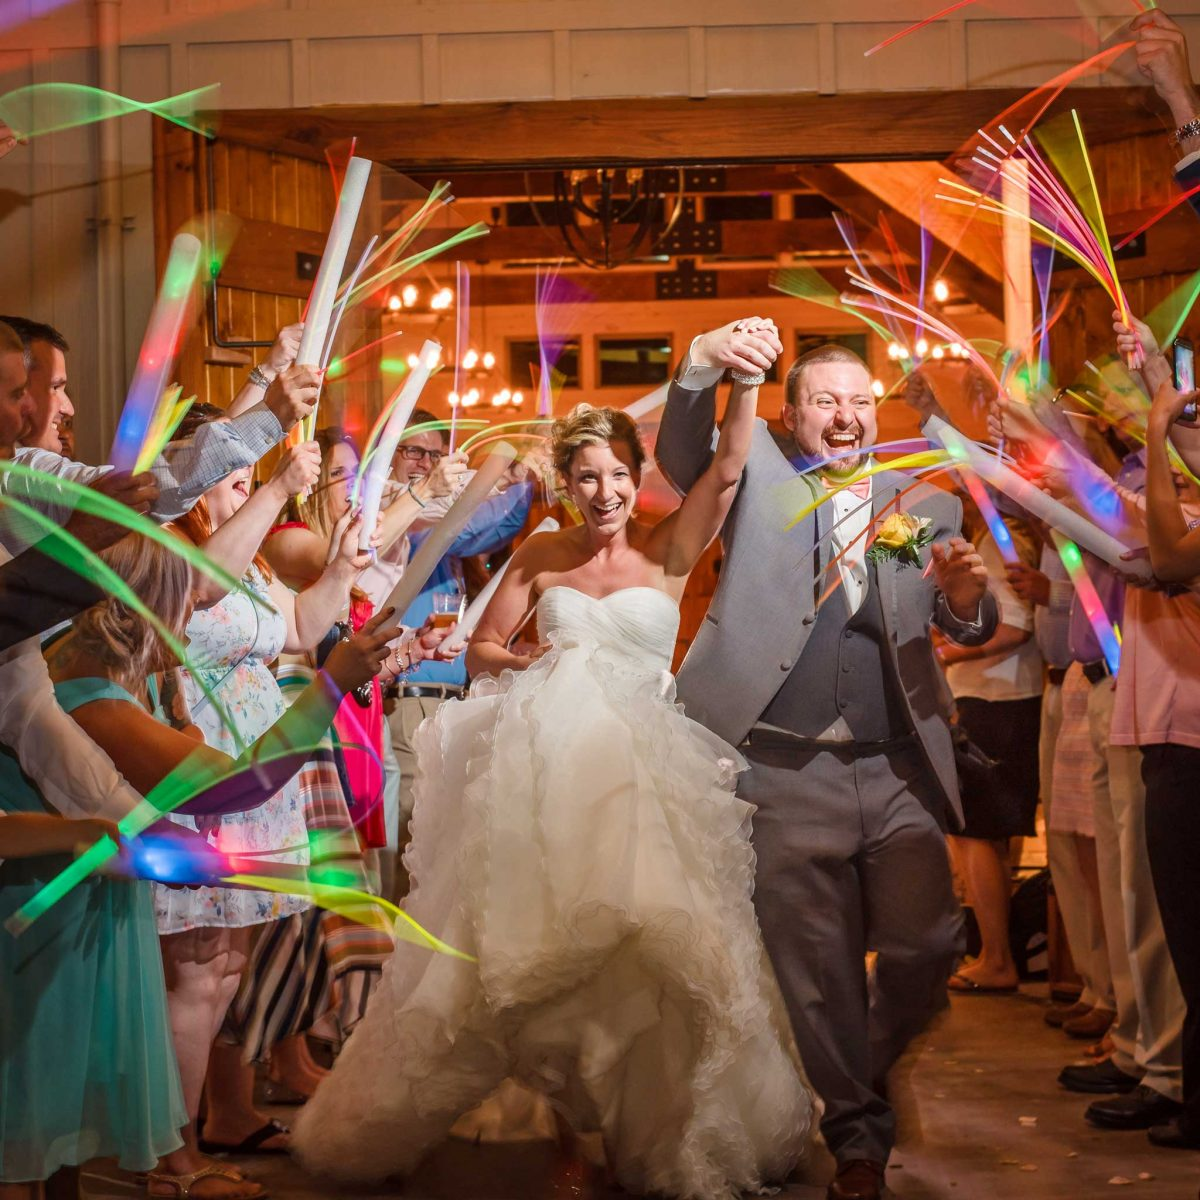 glow stick wedding exit at Hiwassee River Weddings in Delano TN